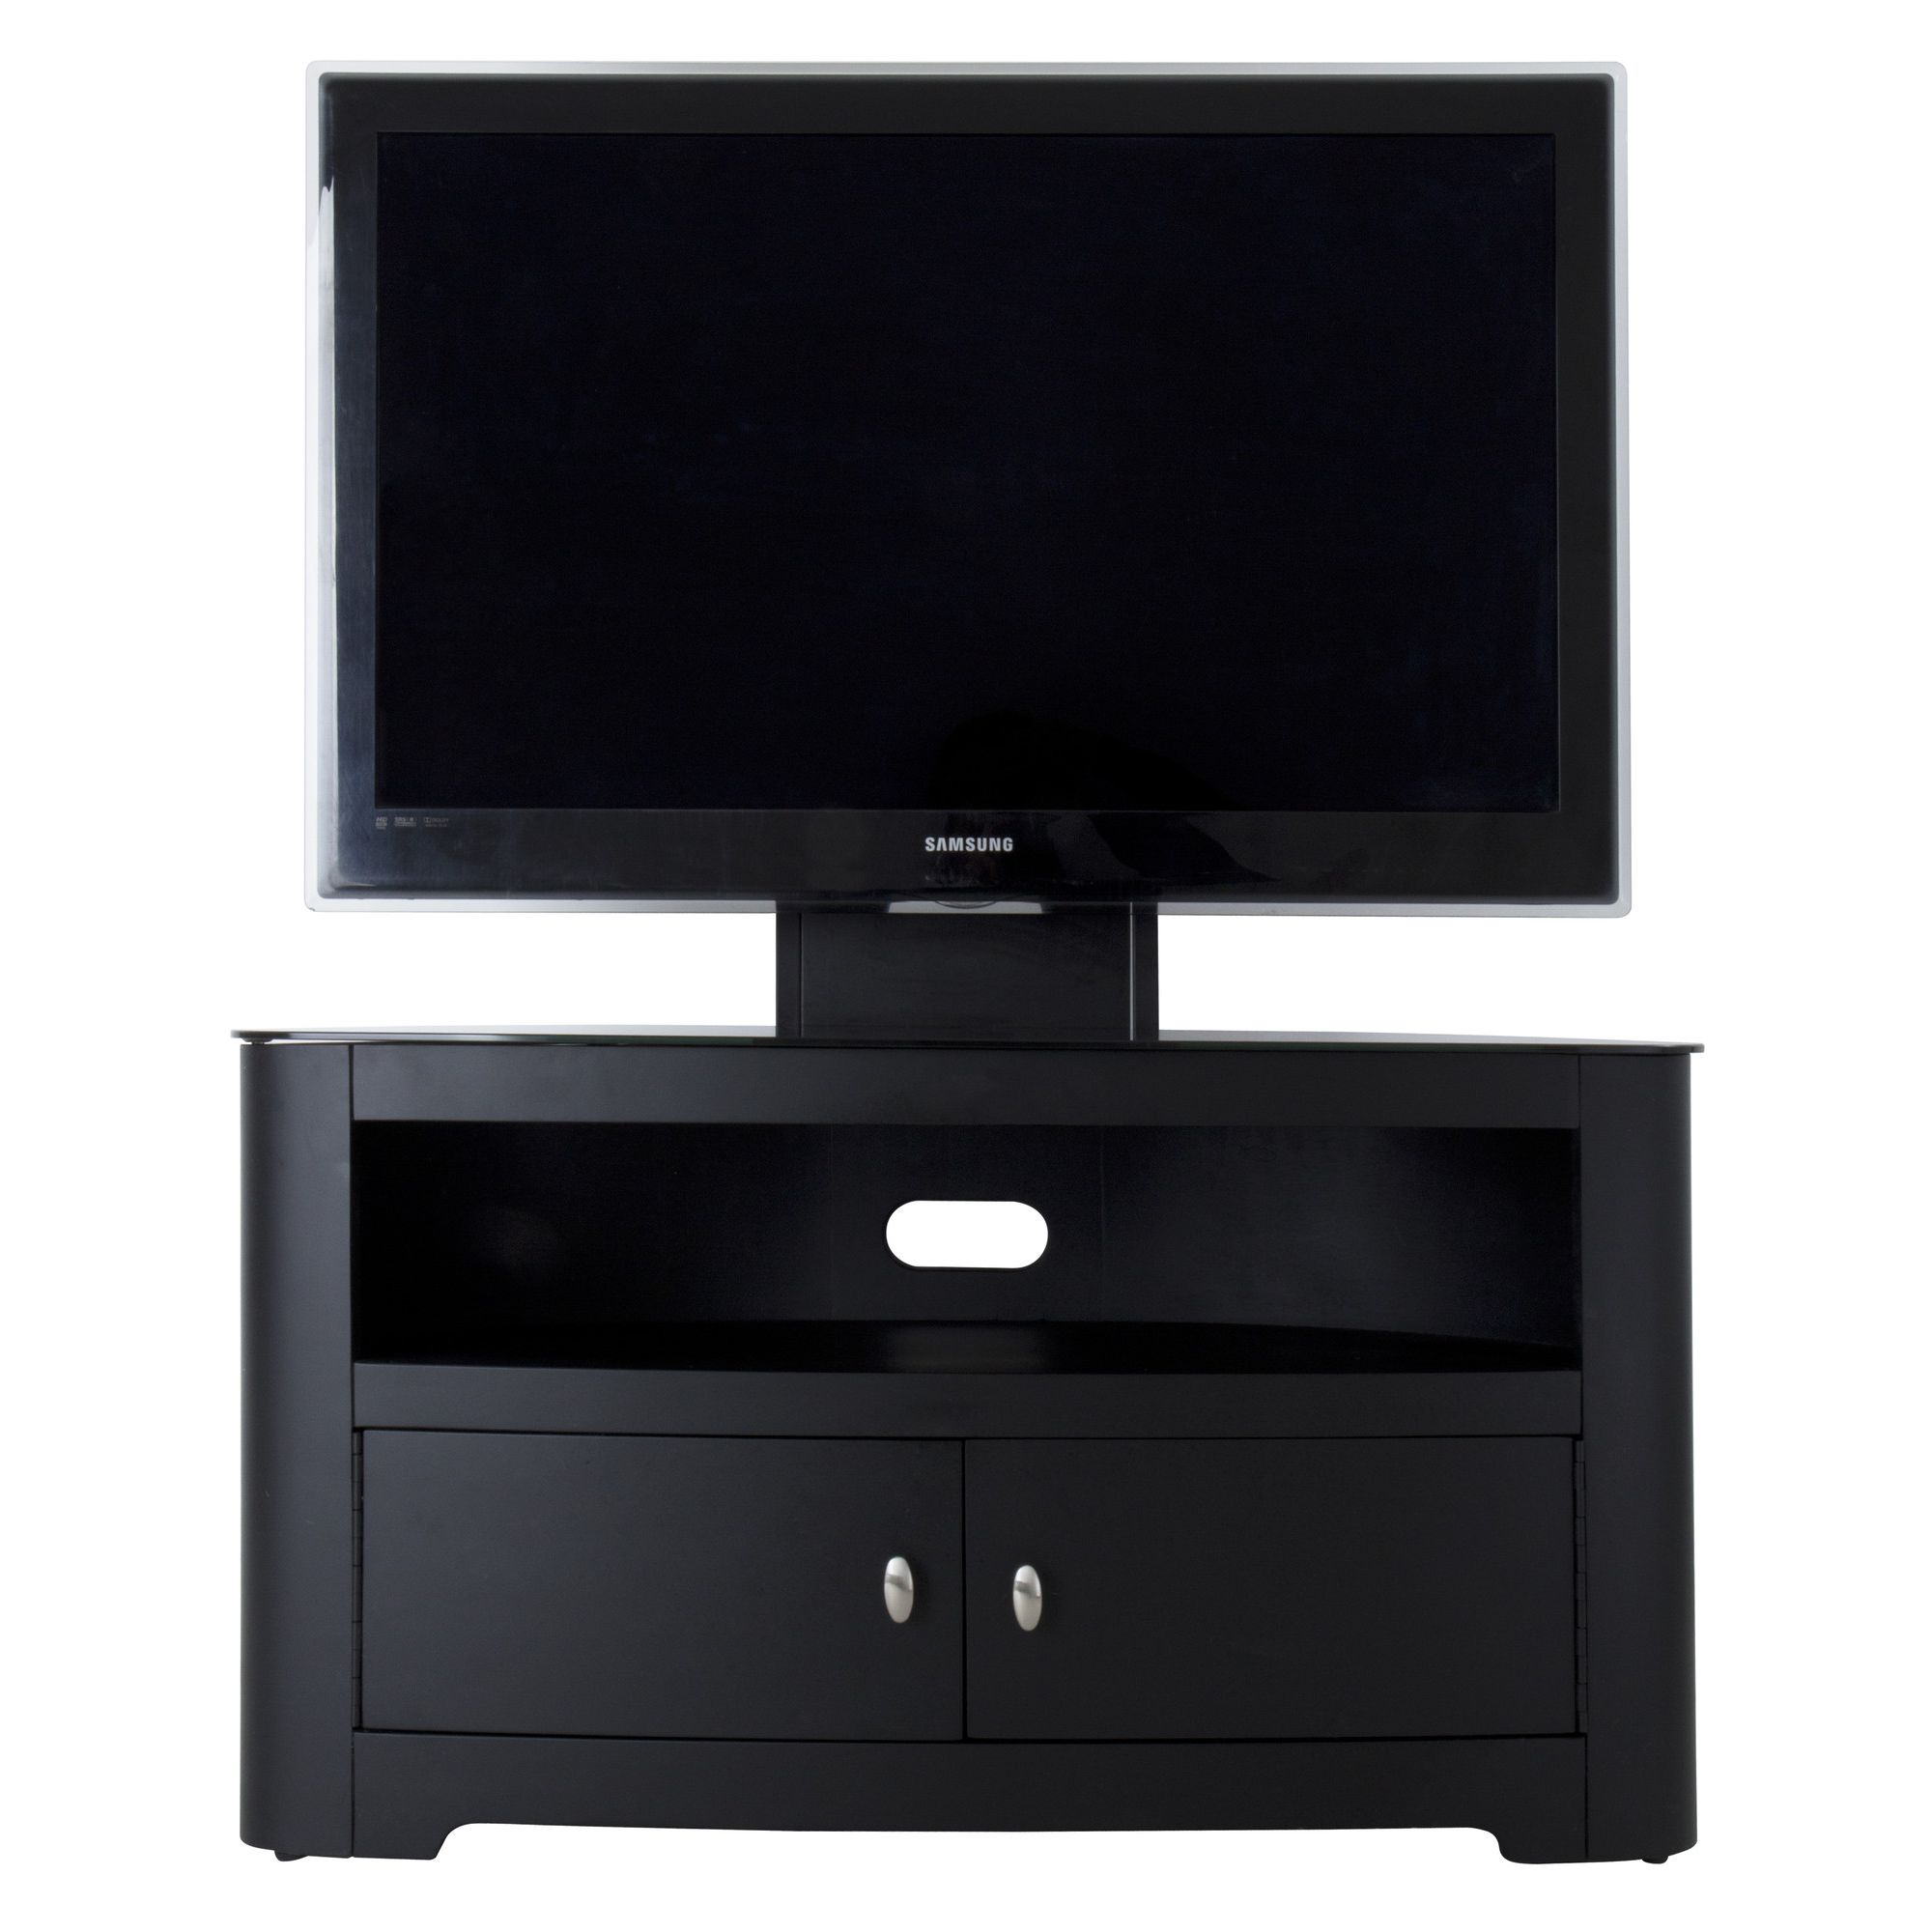 AVF Affinity Combination TV Stand - Satin Black at Tesco Direct